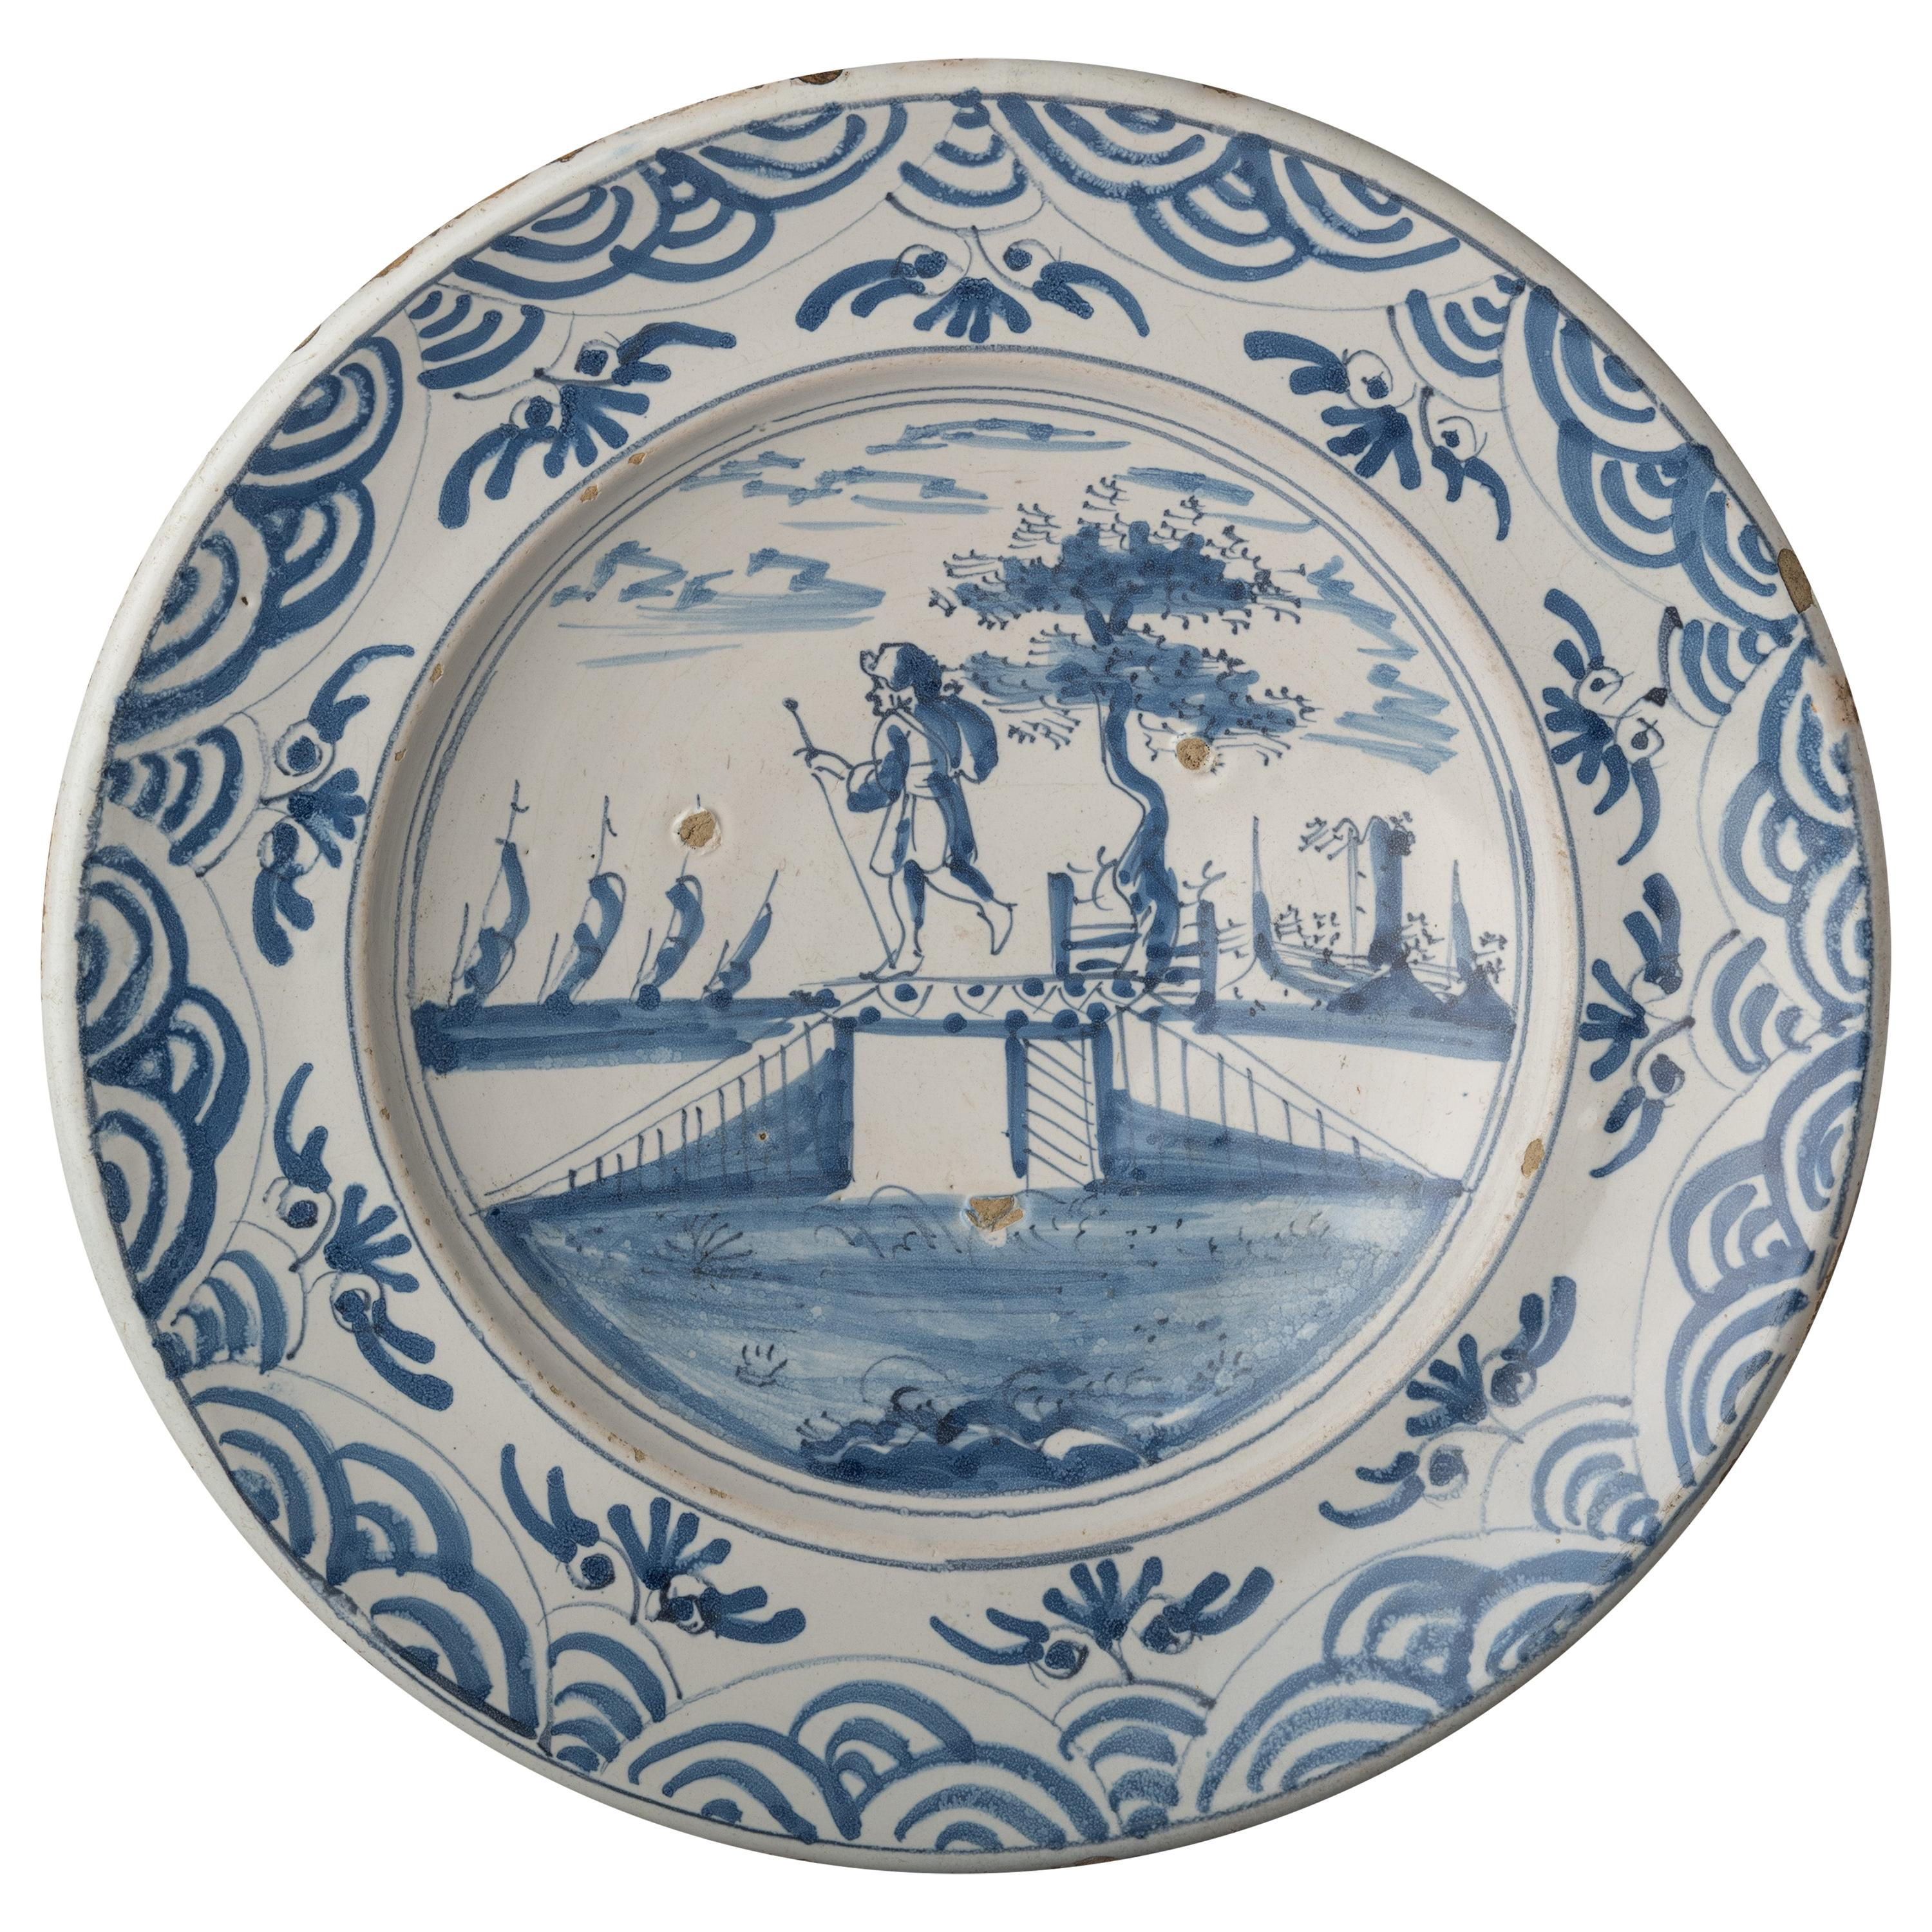 Delft, Blue and White Charger with a Shepherd in a Landscape, 1670-1700